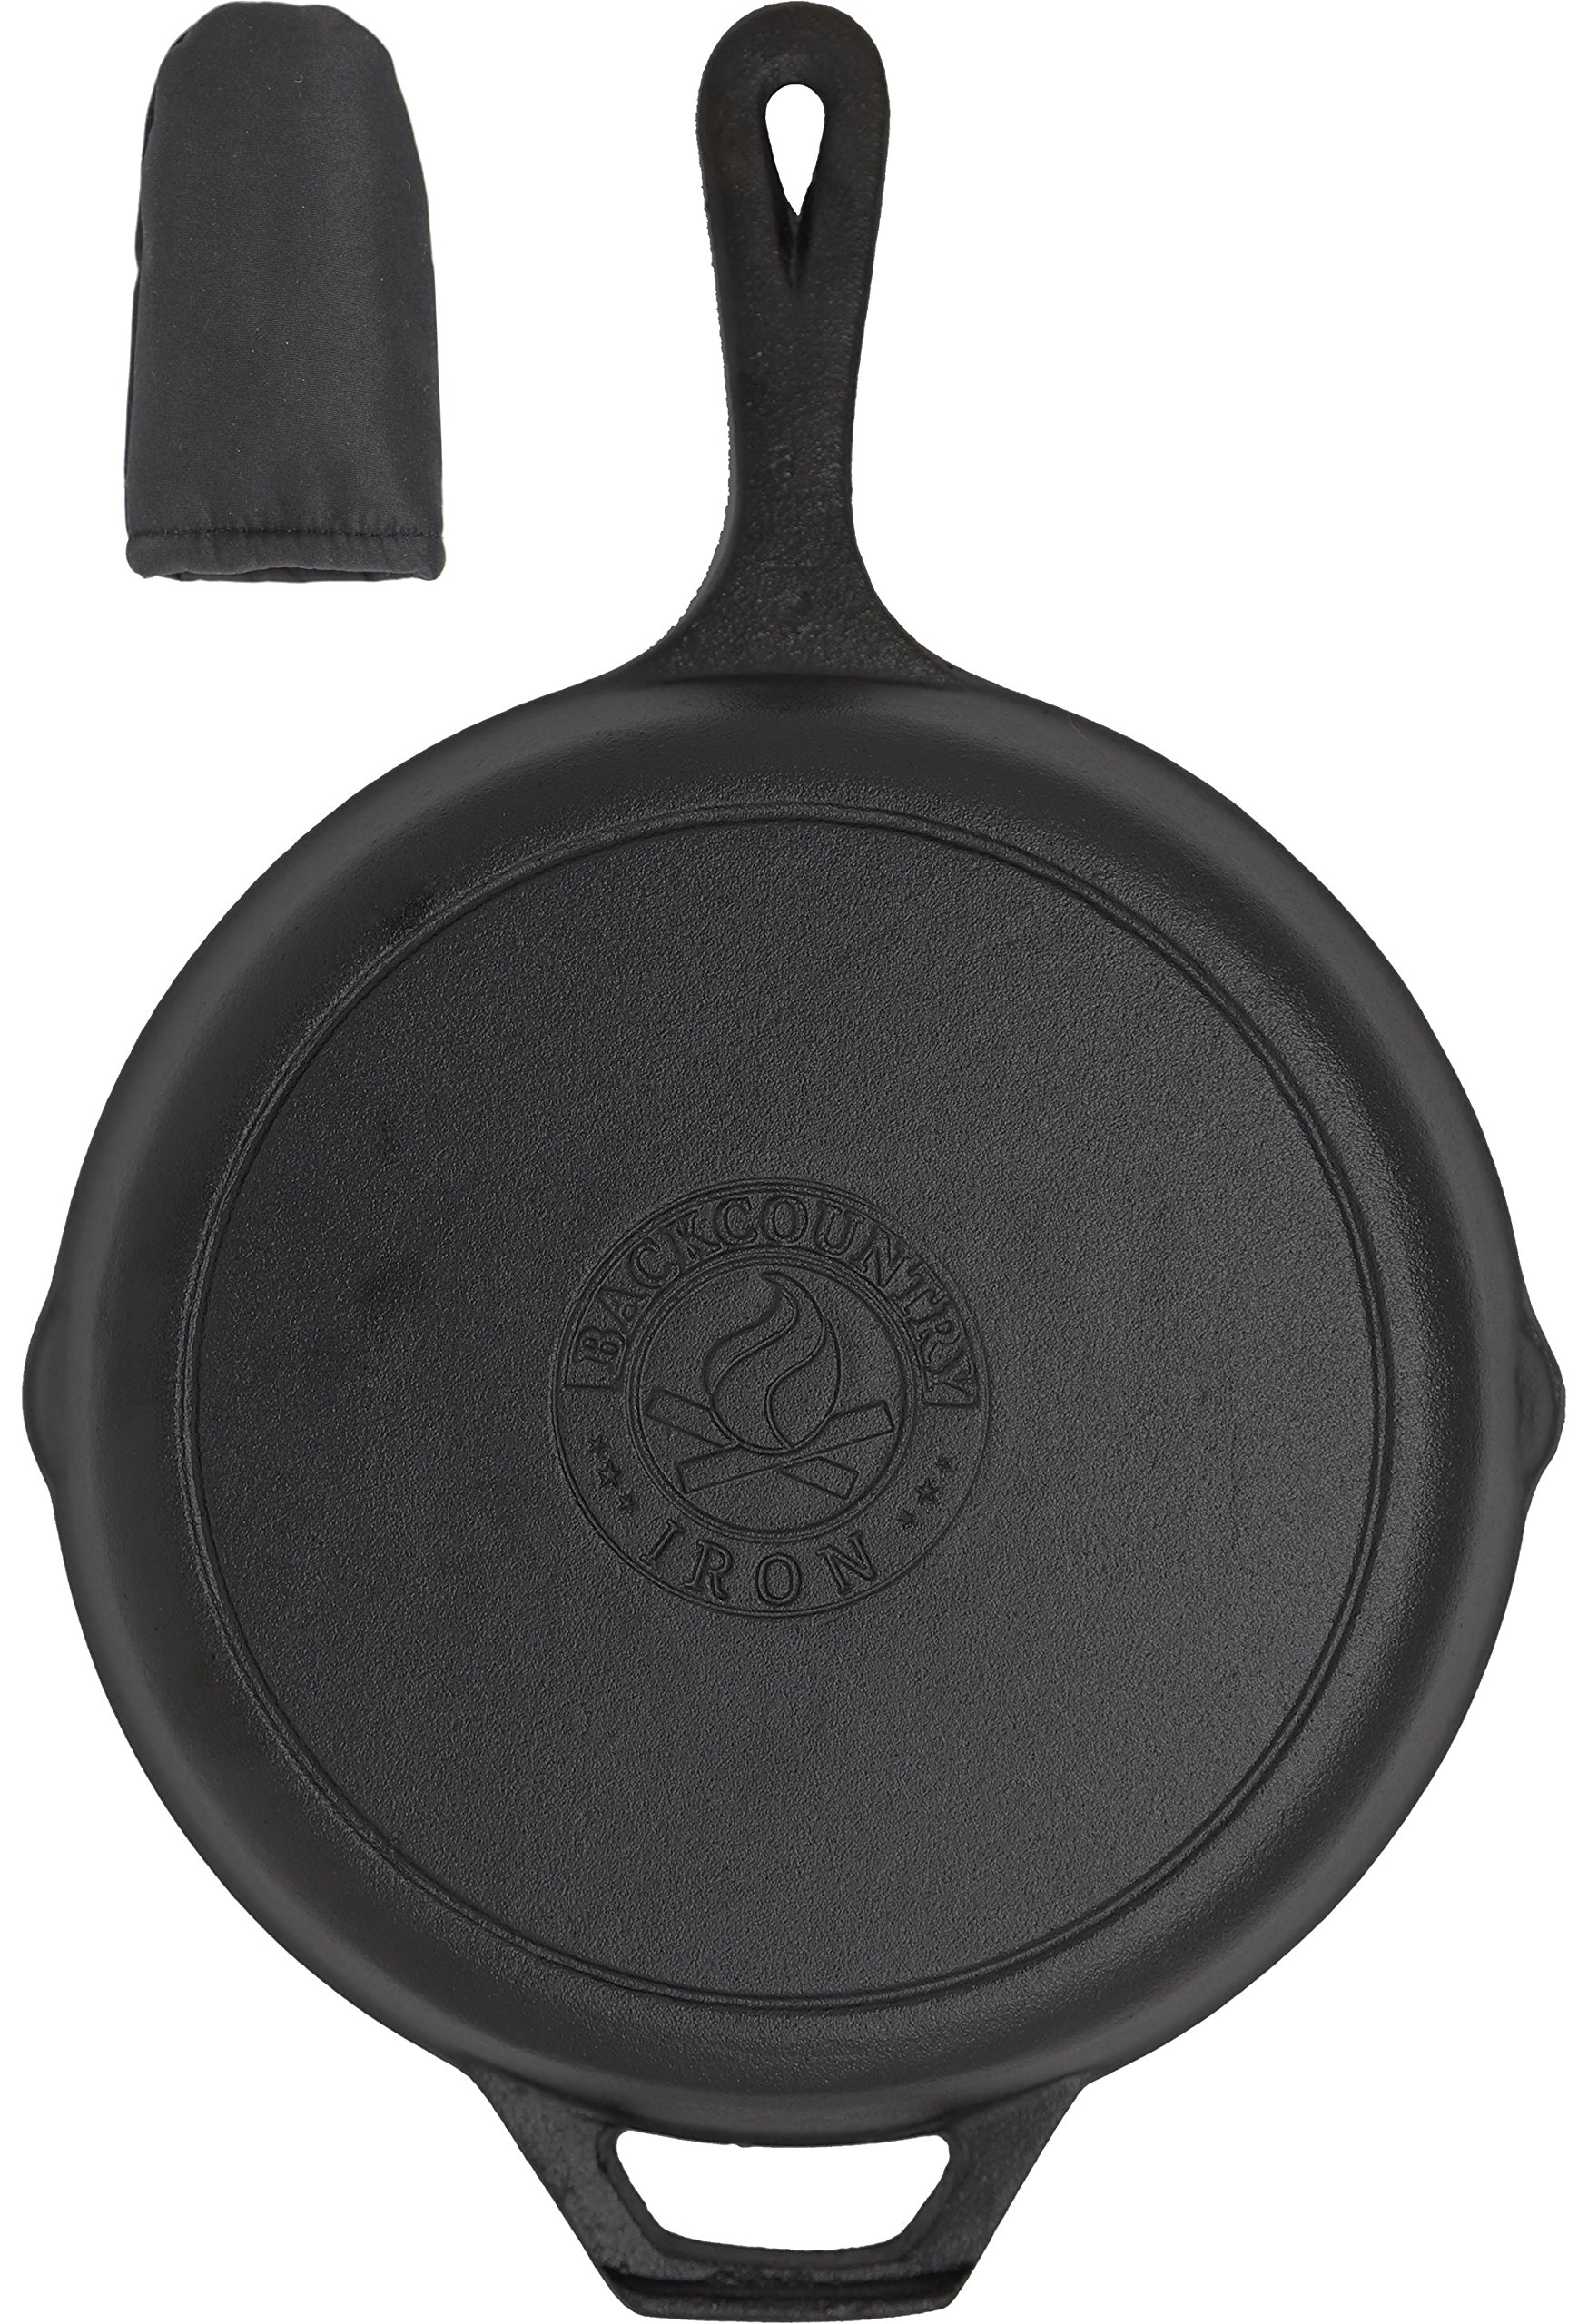 Backcountry Cast Iron Skillet(10 Inch Medium Frying Pan + Cloth Handle Mitt, Pre-Seasoned for Non-Stick Like Surface, Cookware Oven / Broiler / Grill Safe, Kitchen Deep Fryer, Restaurant Chef Quality)